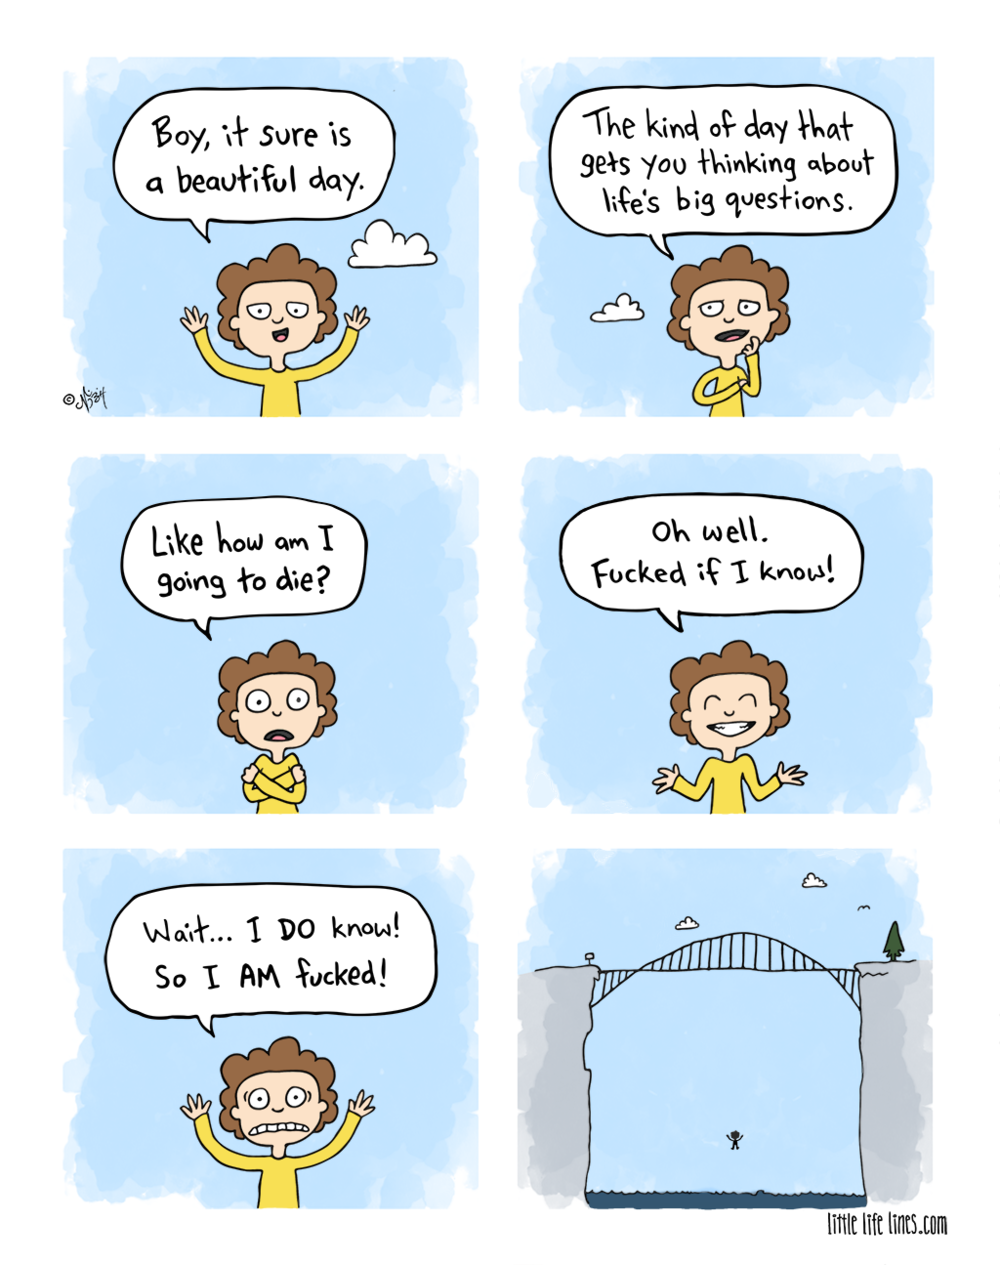 Cartoon Thinking about life's big questions like how am I going to die but fucked if I know © little life lines comic by Nick Birch